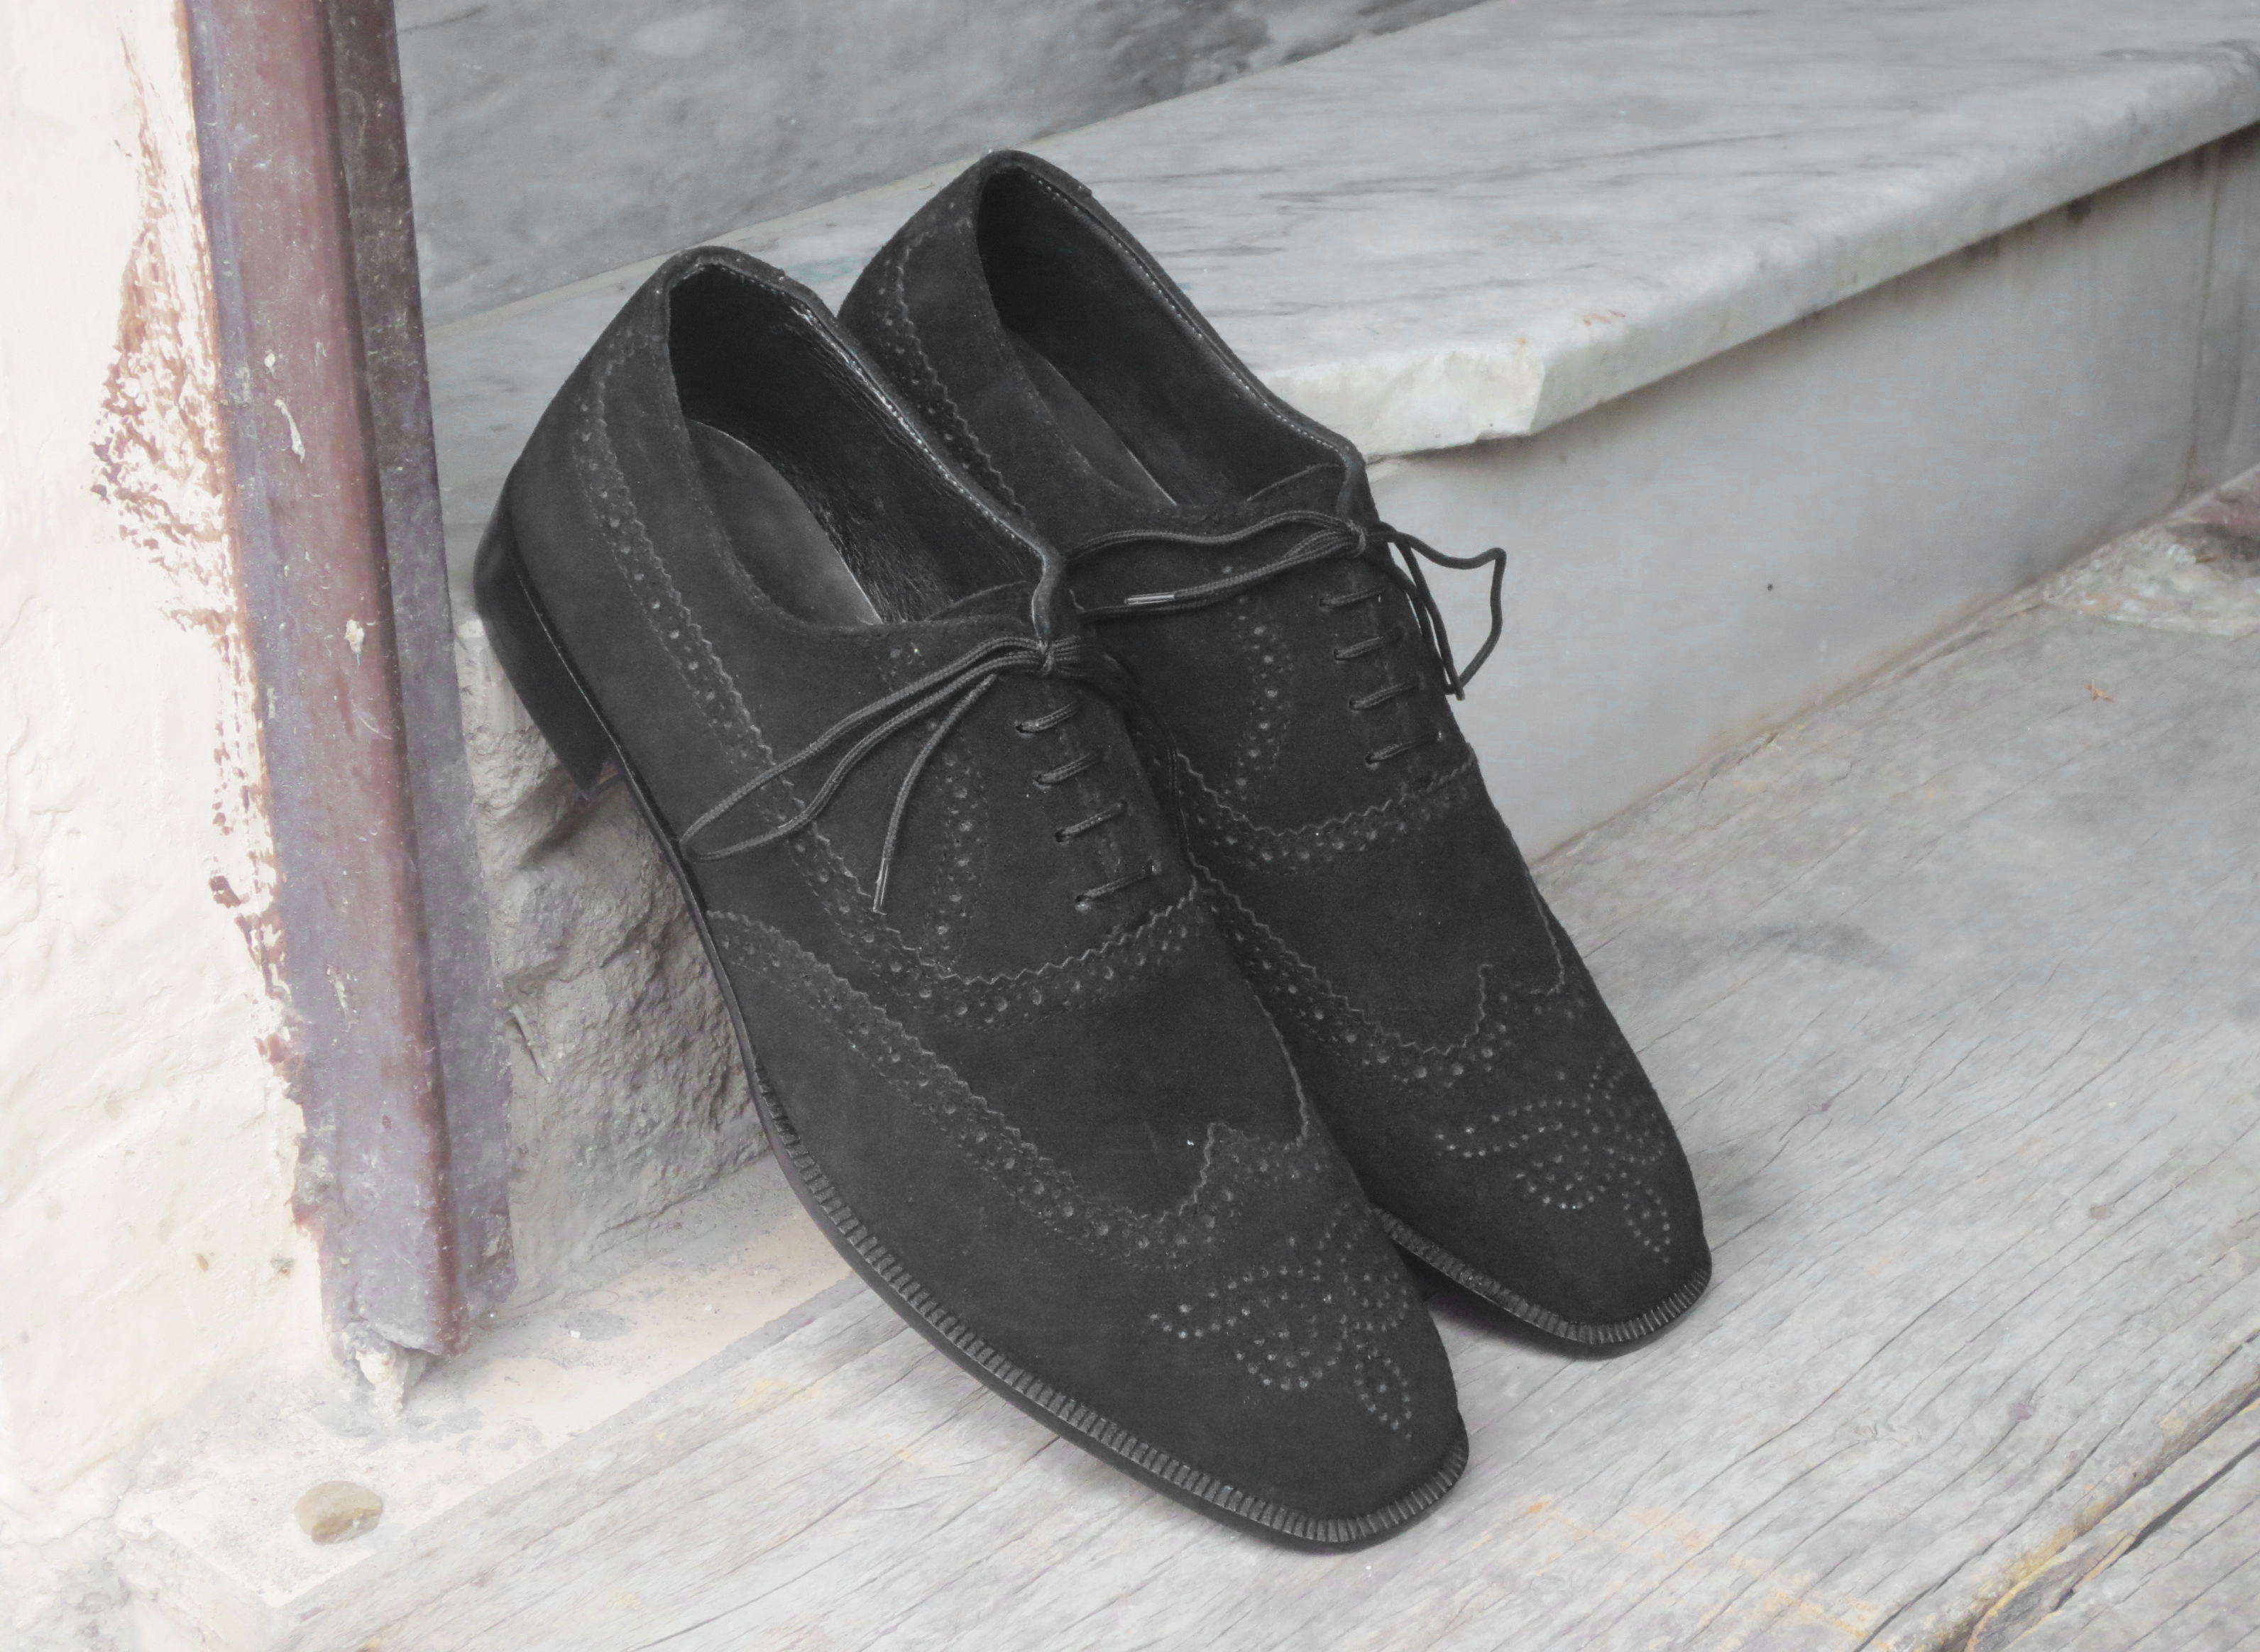 Handmade Men's Black Color Suede Leather Shoes, Wing Tip Brogue Dress Formal Lace Up Shoes sold by The Leather Souq